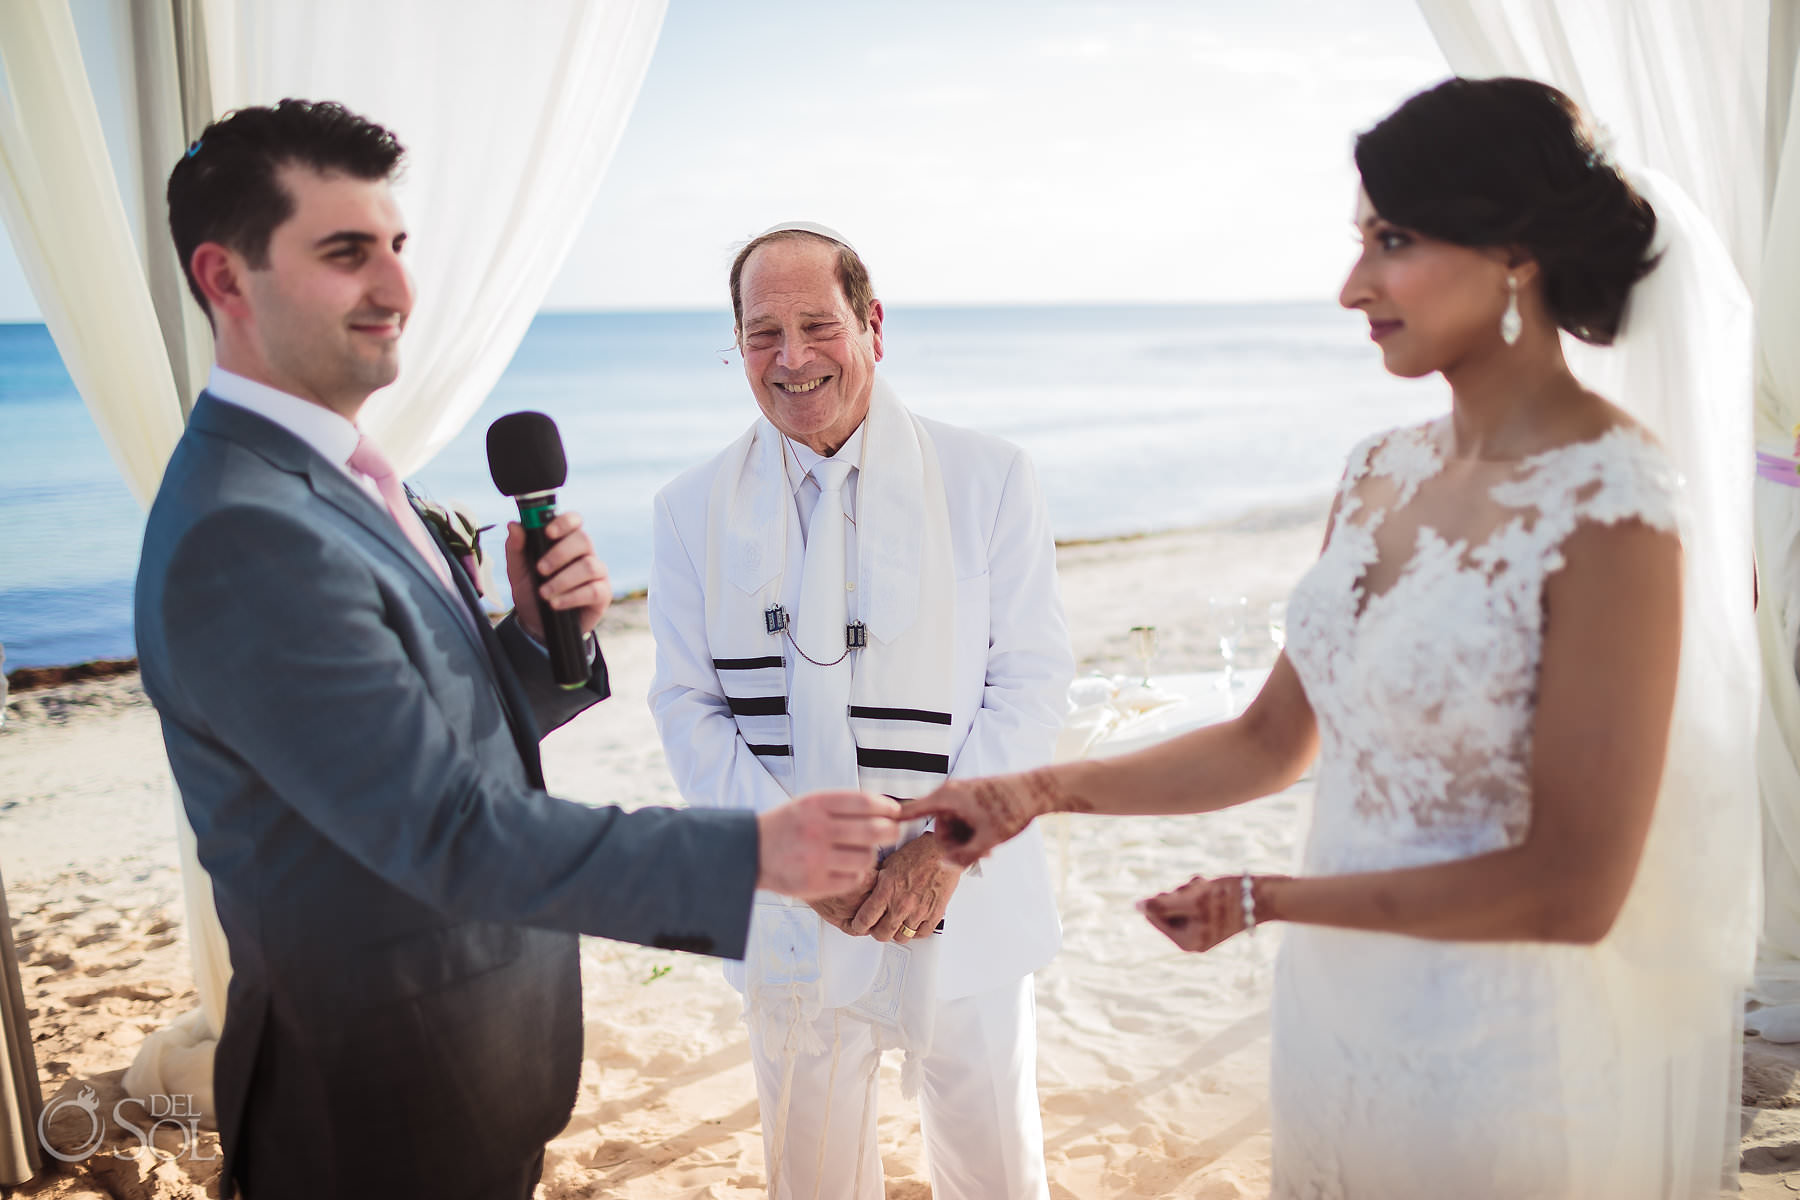 Rabbi Hin Jew wedding ring exchange in Tulum Mexico